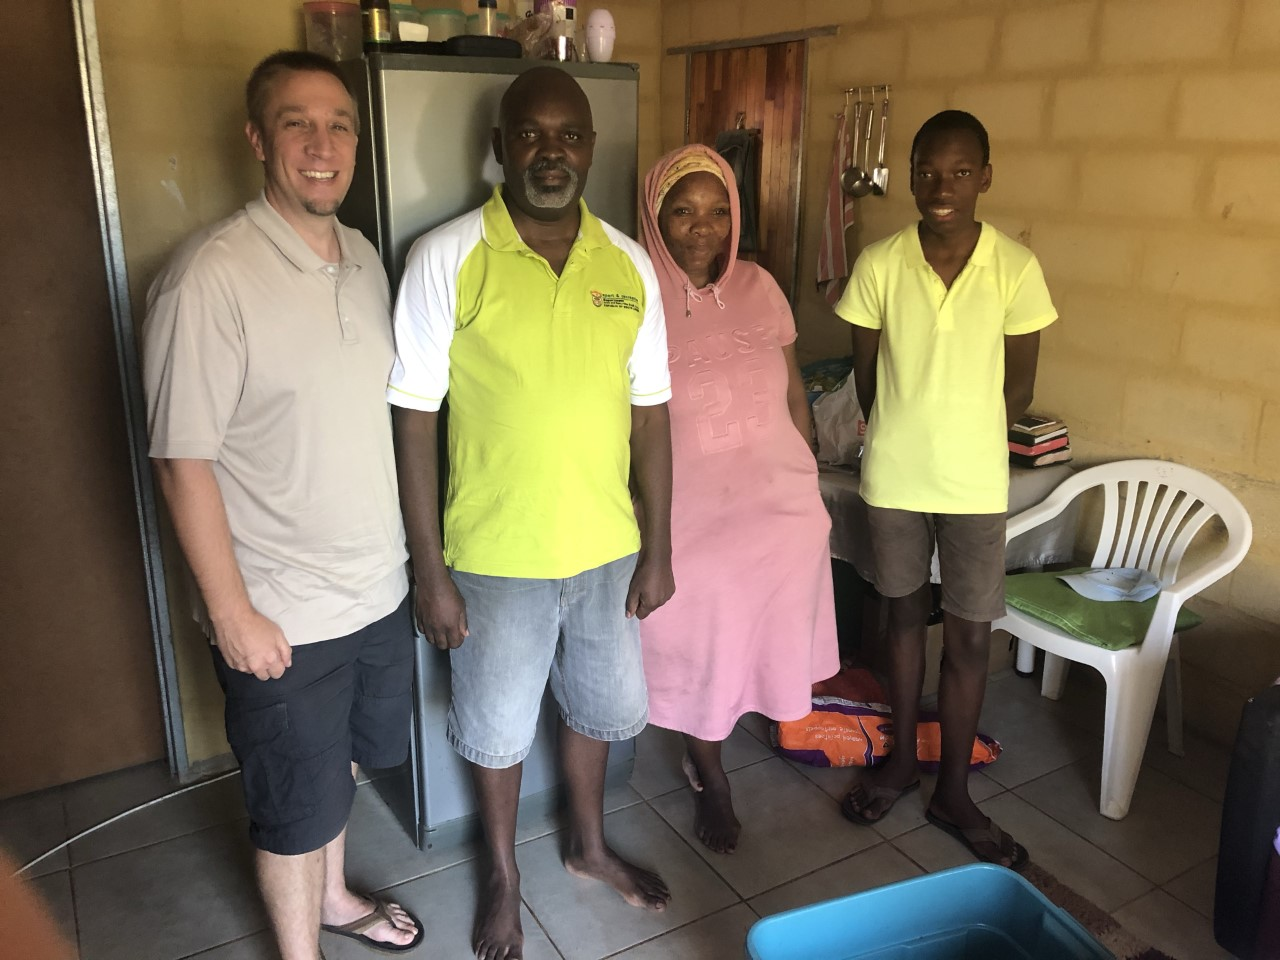 Darin Ishler making a food delivery to a South African family.